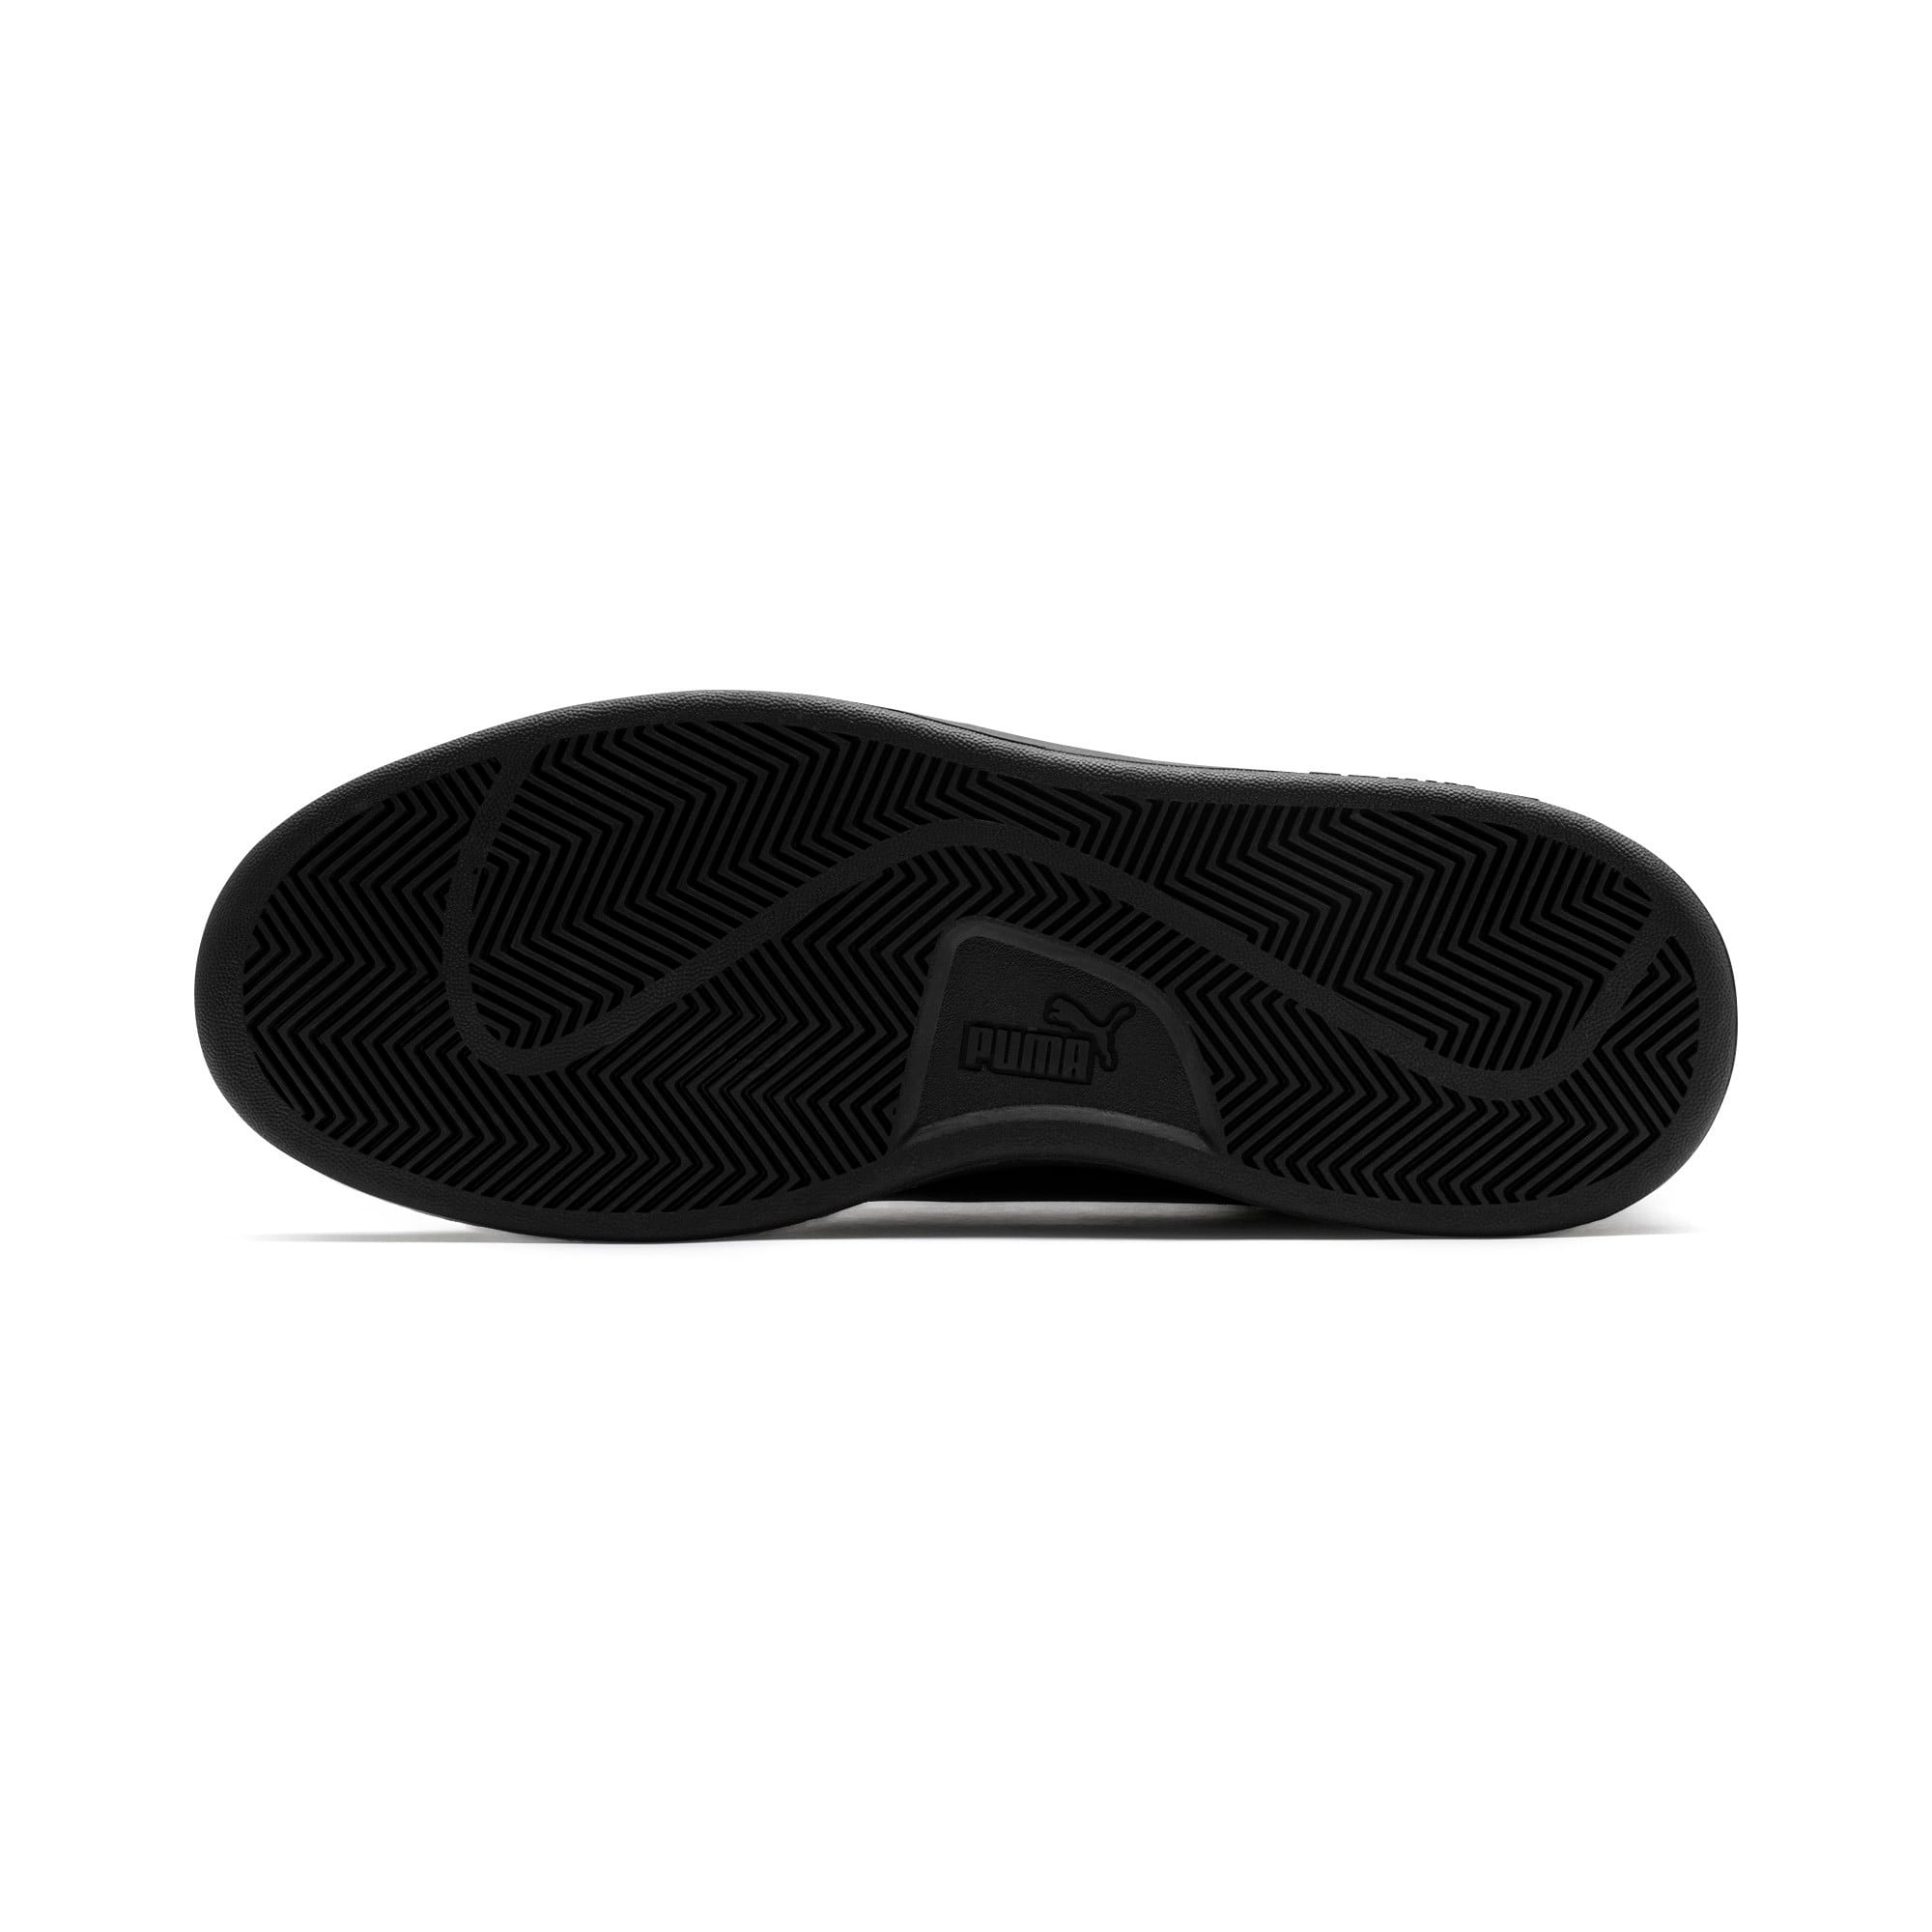 Mercedes AMG Petronas Smash v2 Sneakers, Black-Smkd Pearl-Spectra Grn, large